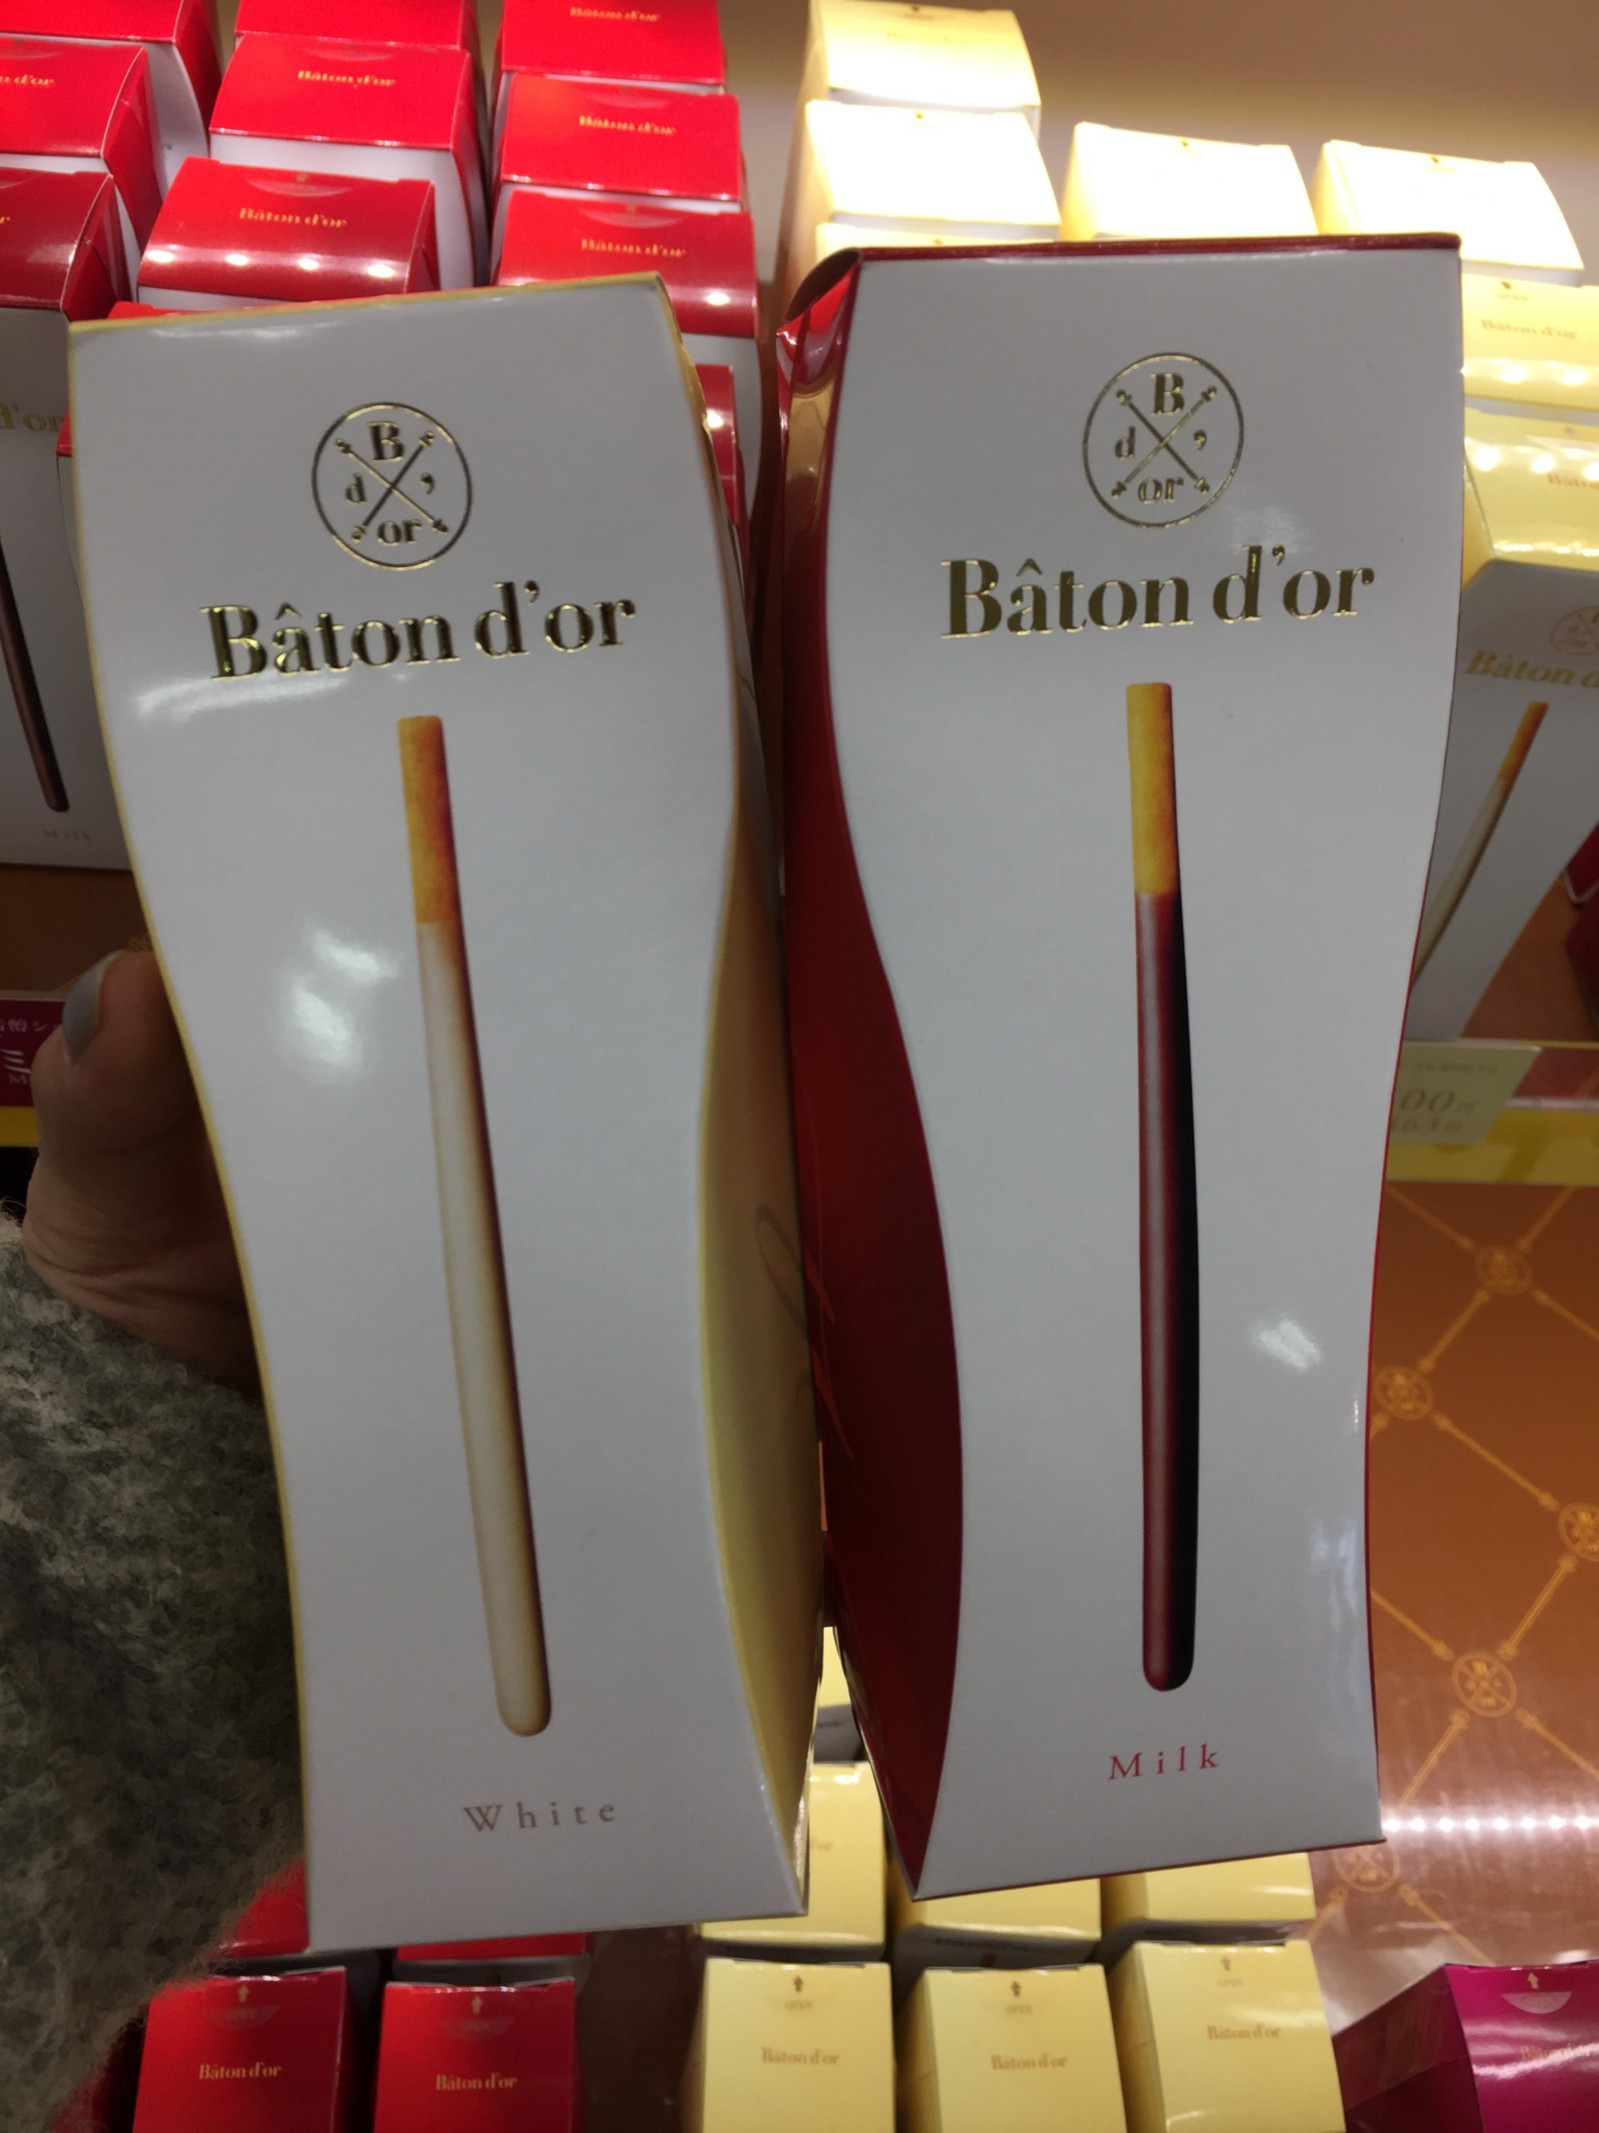 Baton d'or in white and milk chocolate flavour